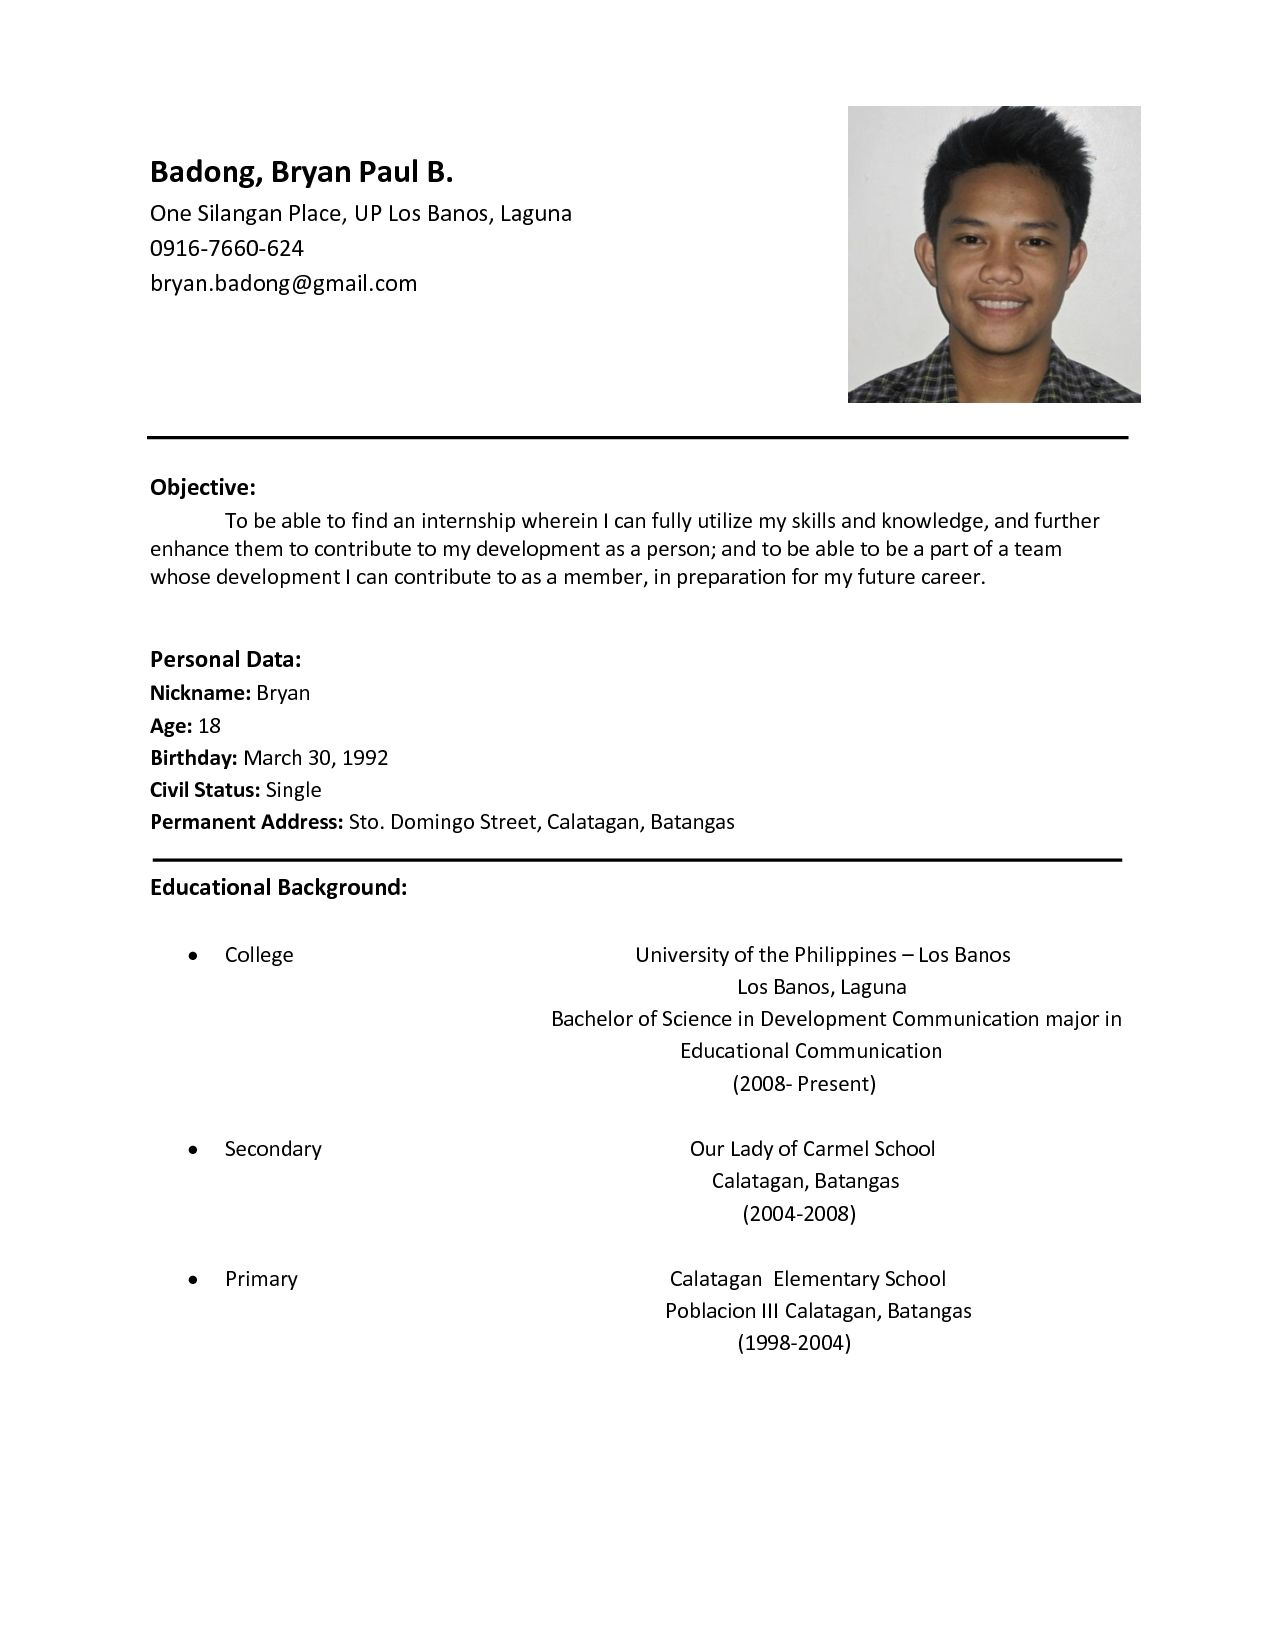 Proper resume job format examples data sample resume new example of proper resume job format examples data sample resume new example of a resume format altavistaventures